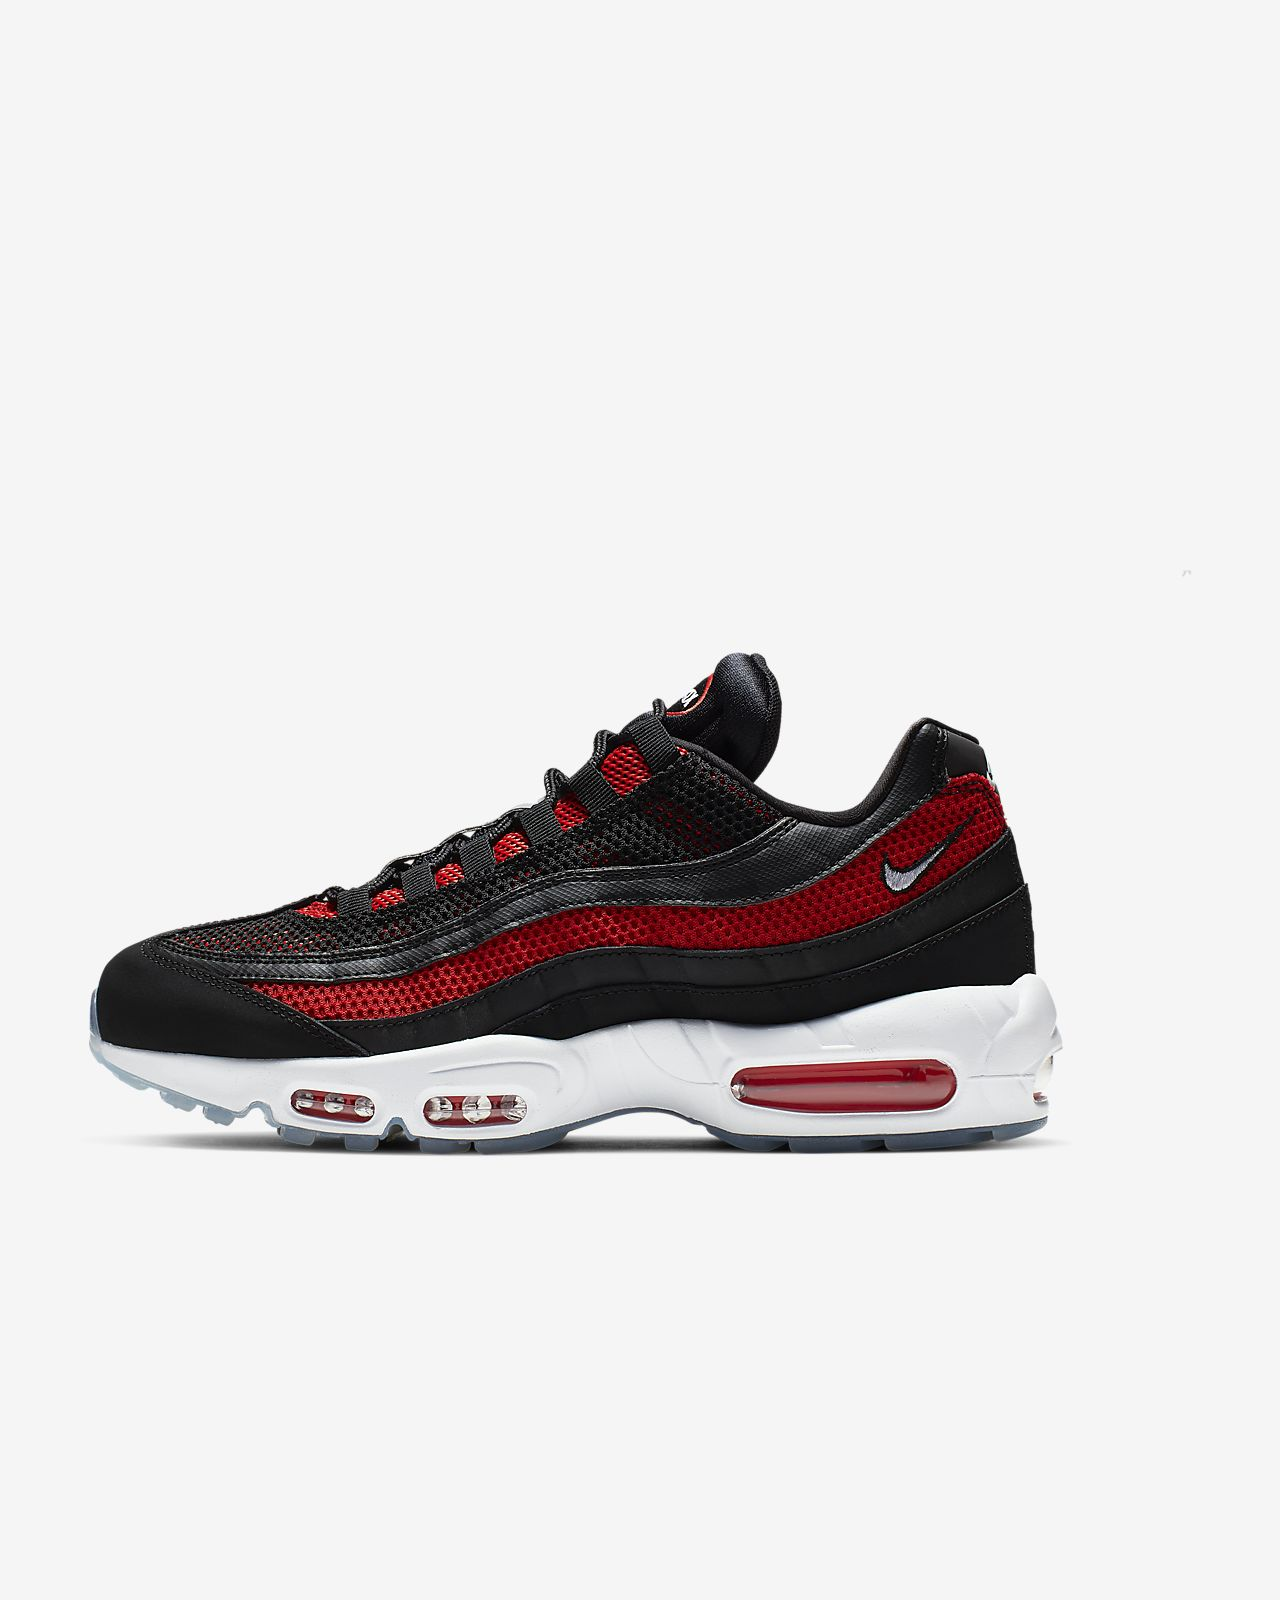 50c2cdd9a7 Nike Air Max 95 Essential Men's Shoe. Nike.com GB